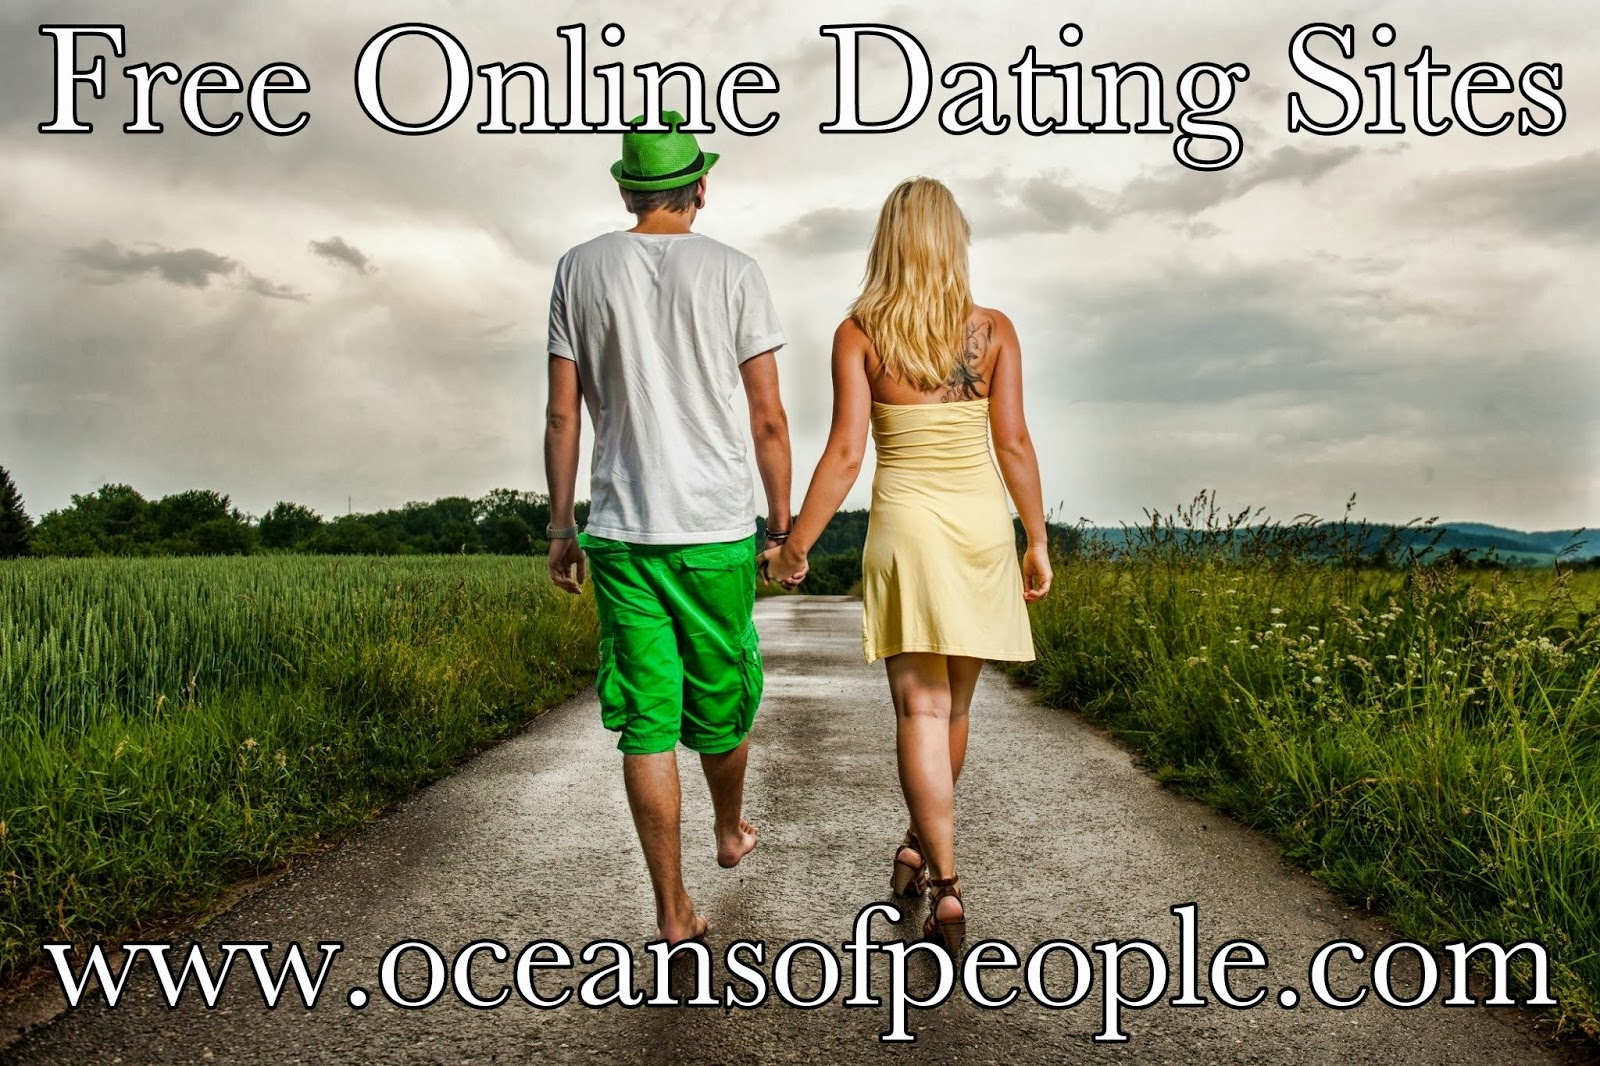 100% free online dating in cotopaxi Trumingle is a 100% totally free dating site for singles chat, messaging, swipe right matching no fees, no credit card needed join now.